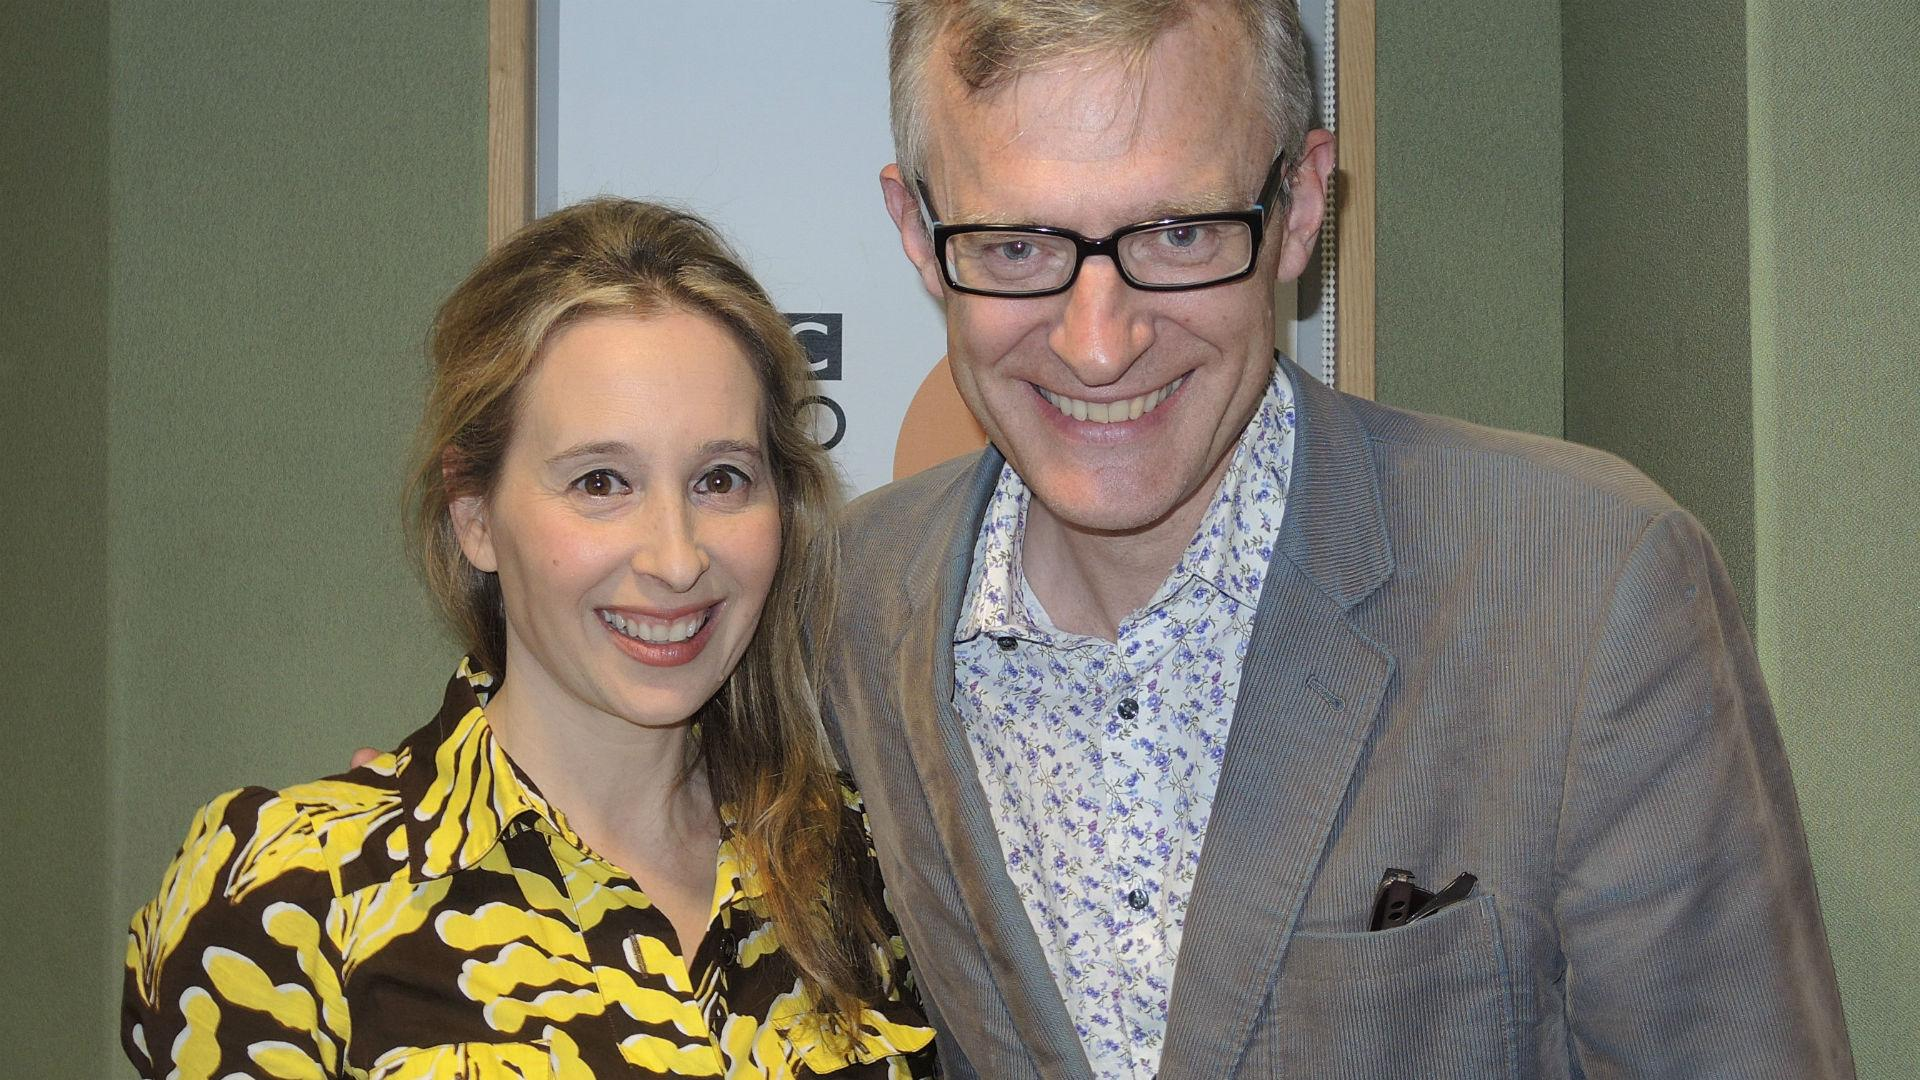 RT @BBCRadio2: Huge thanks to @noreenahertz, who joined us for a brilliant What Makes Us Human! http://t.co/2Ll8UarvrG